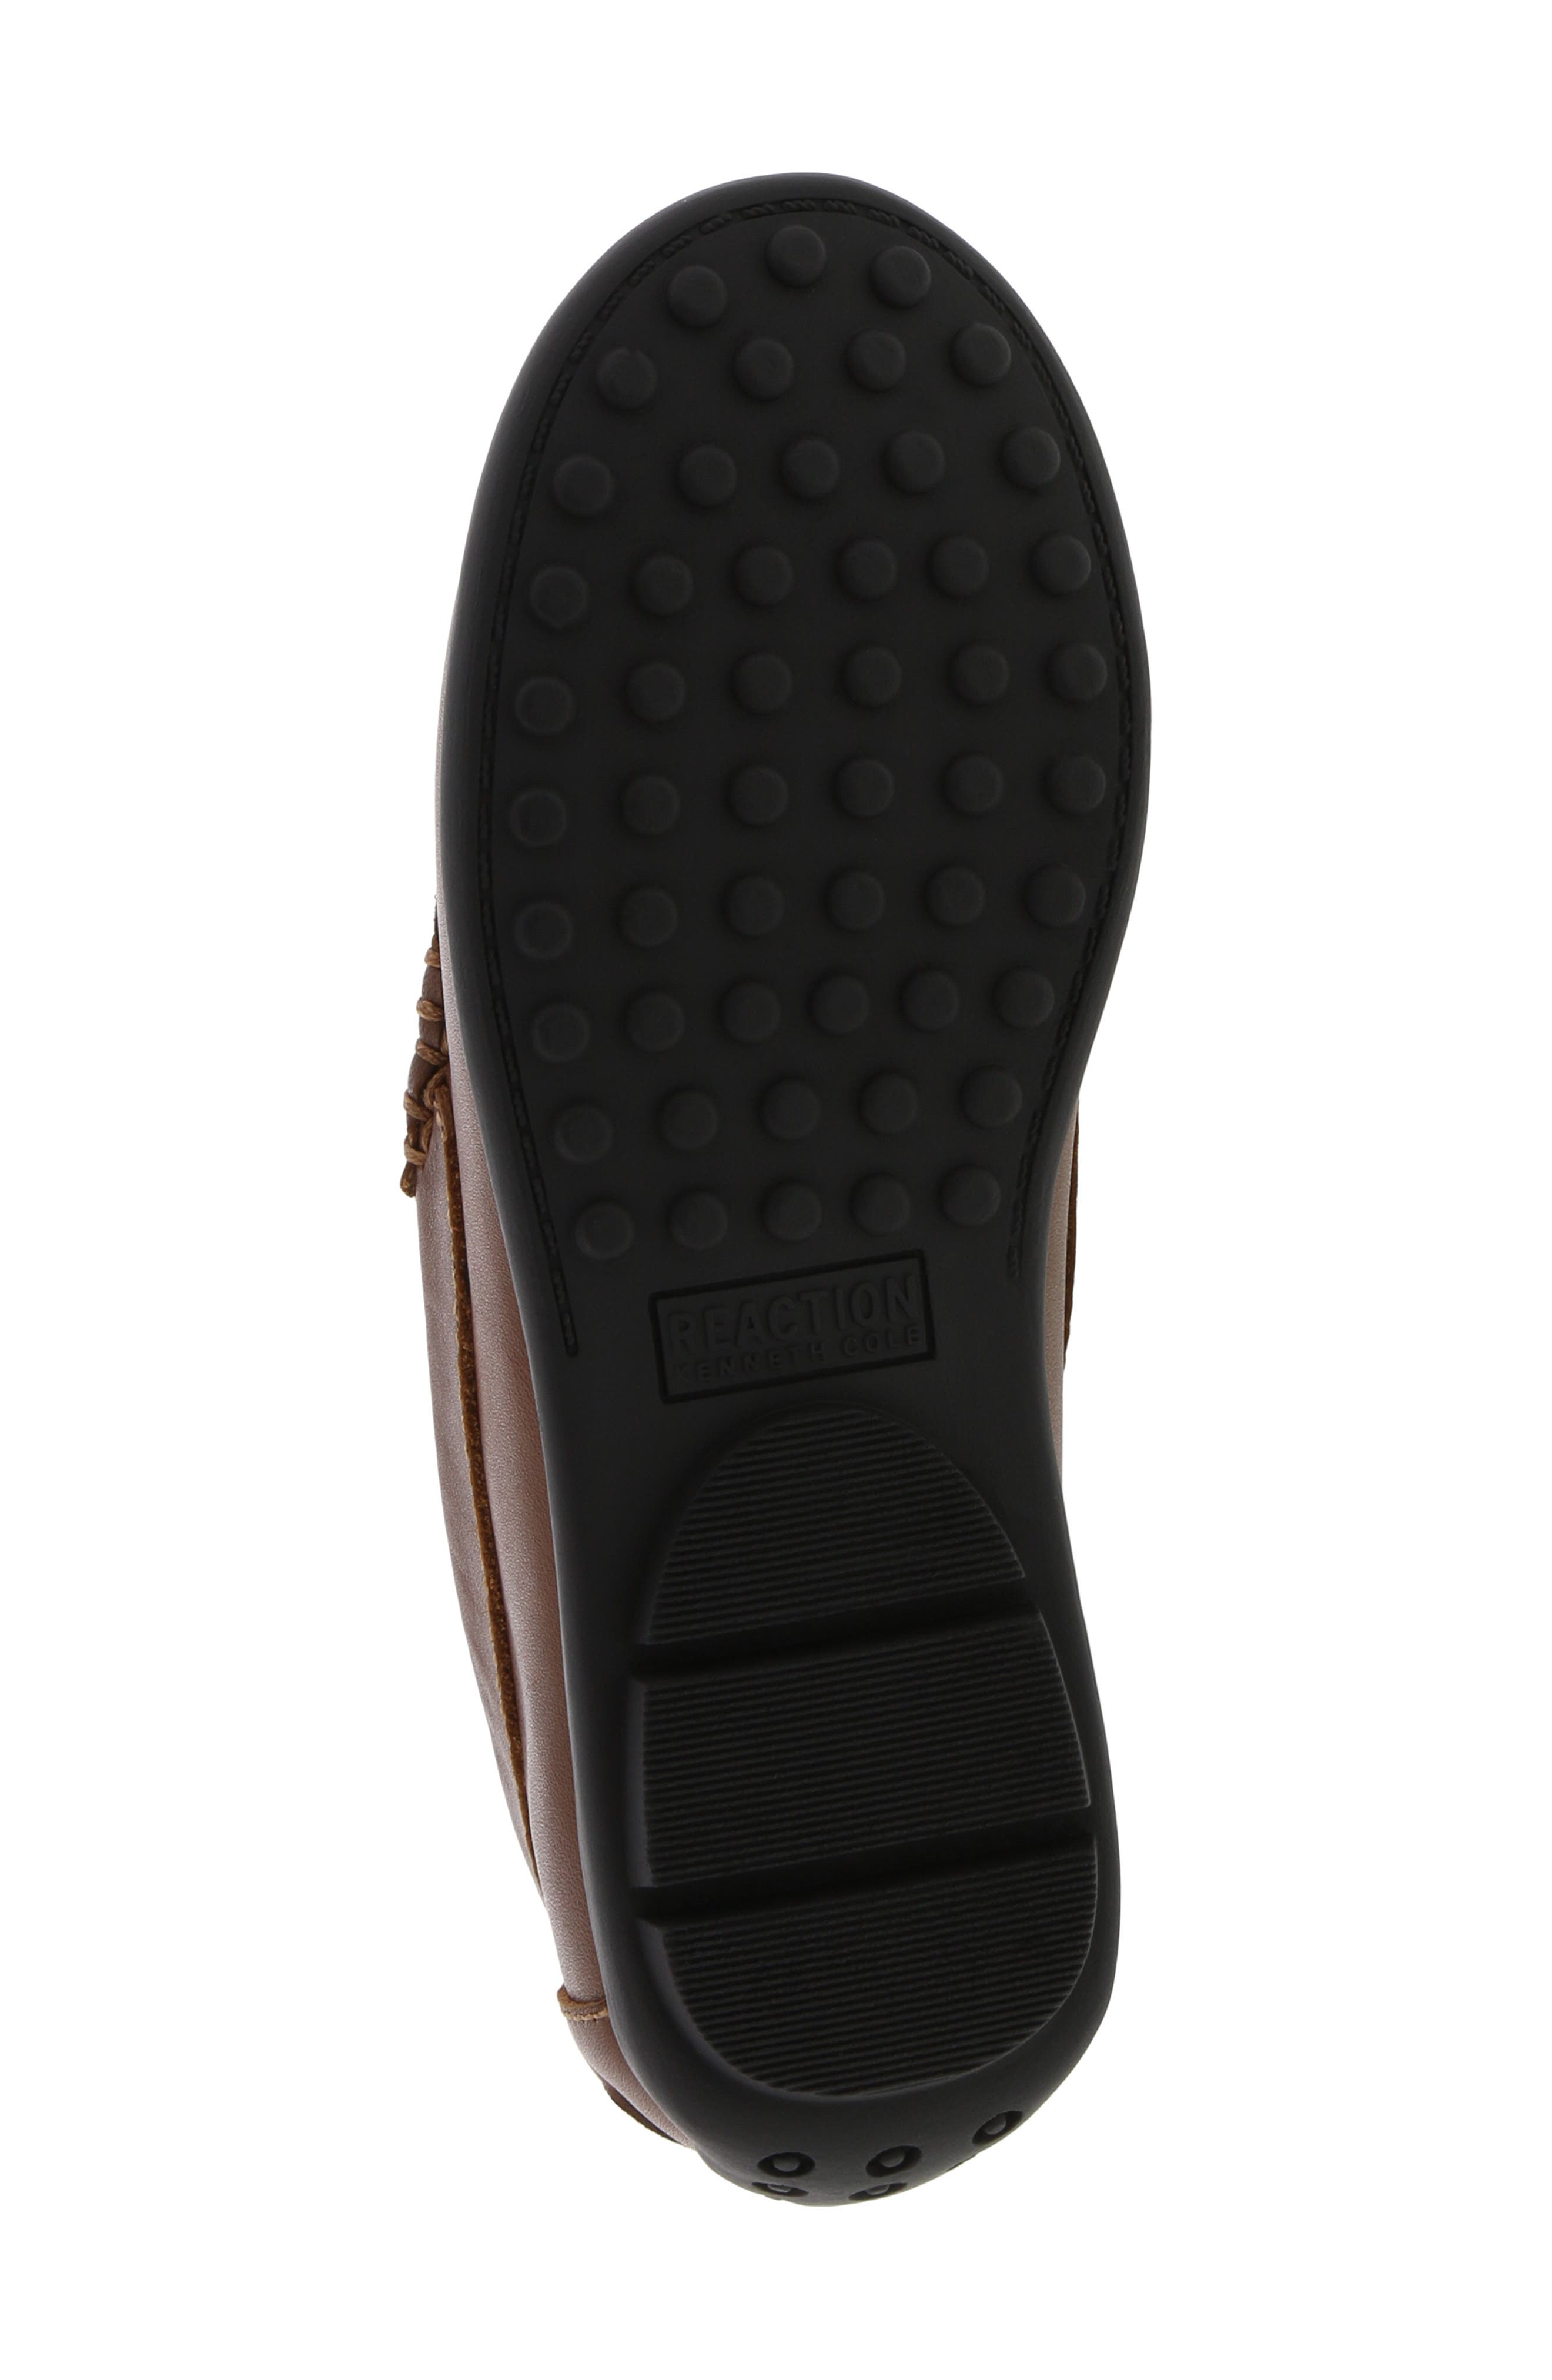 REACTION KENNETH COLE, Helio Gear Loafer, Alternate thumbnail 6, color, COGNAC